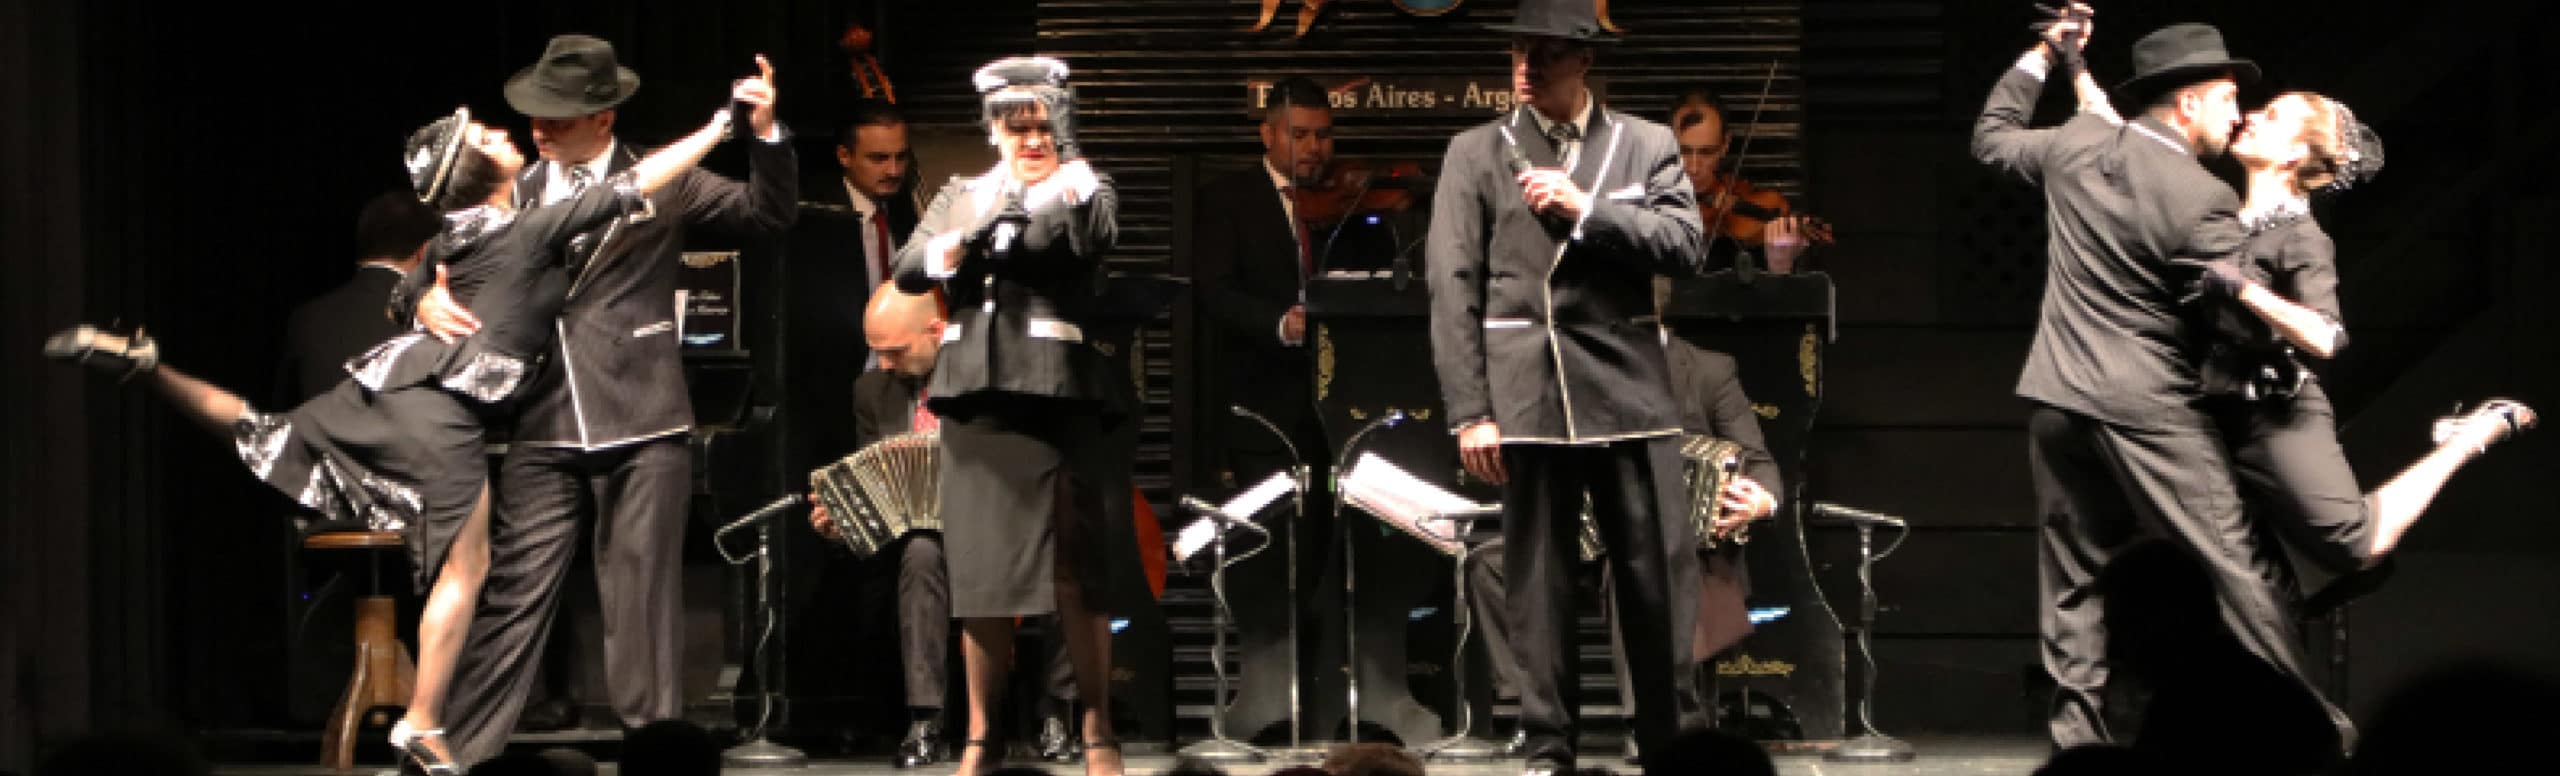 Tango Music of Buenos Aires